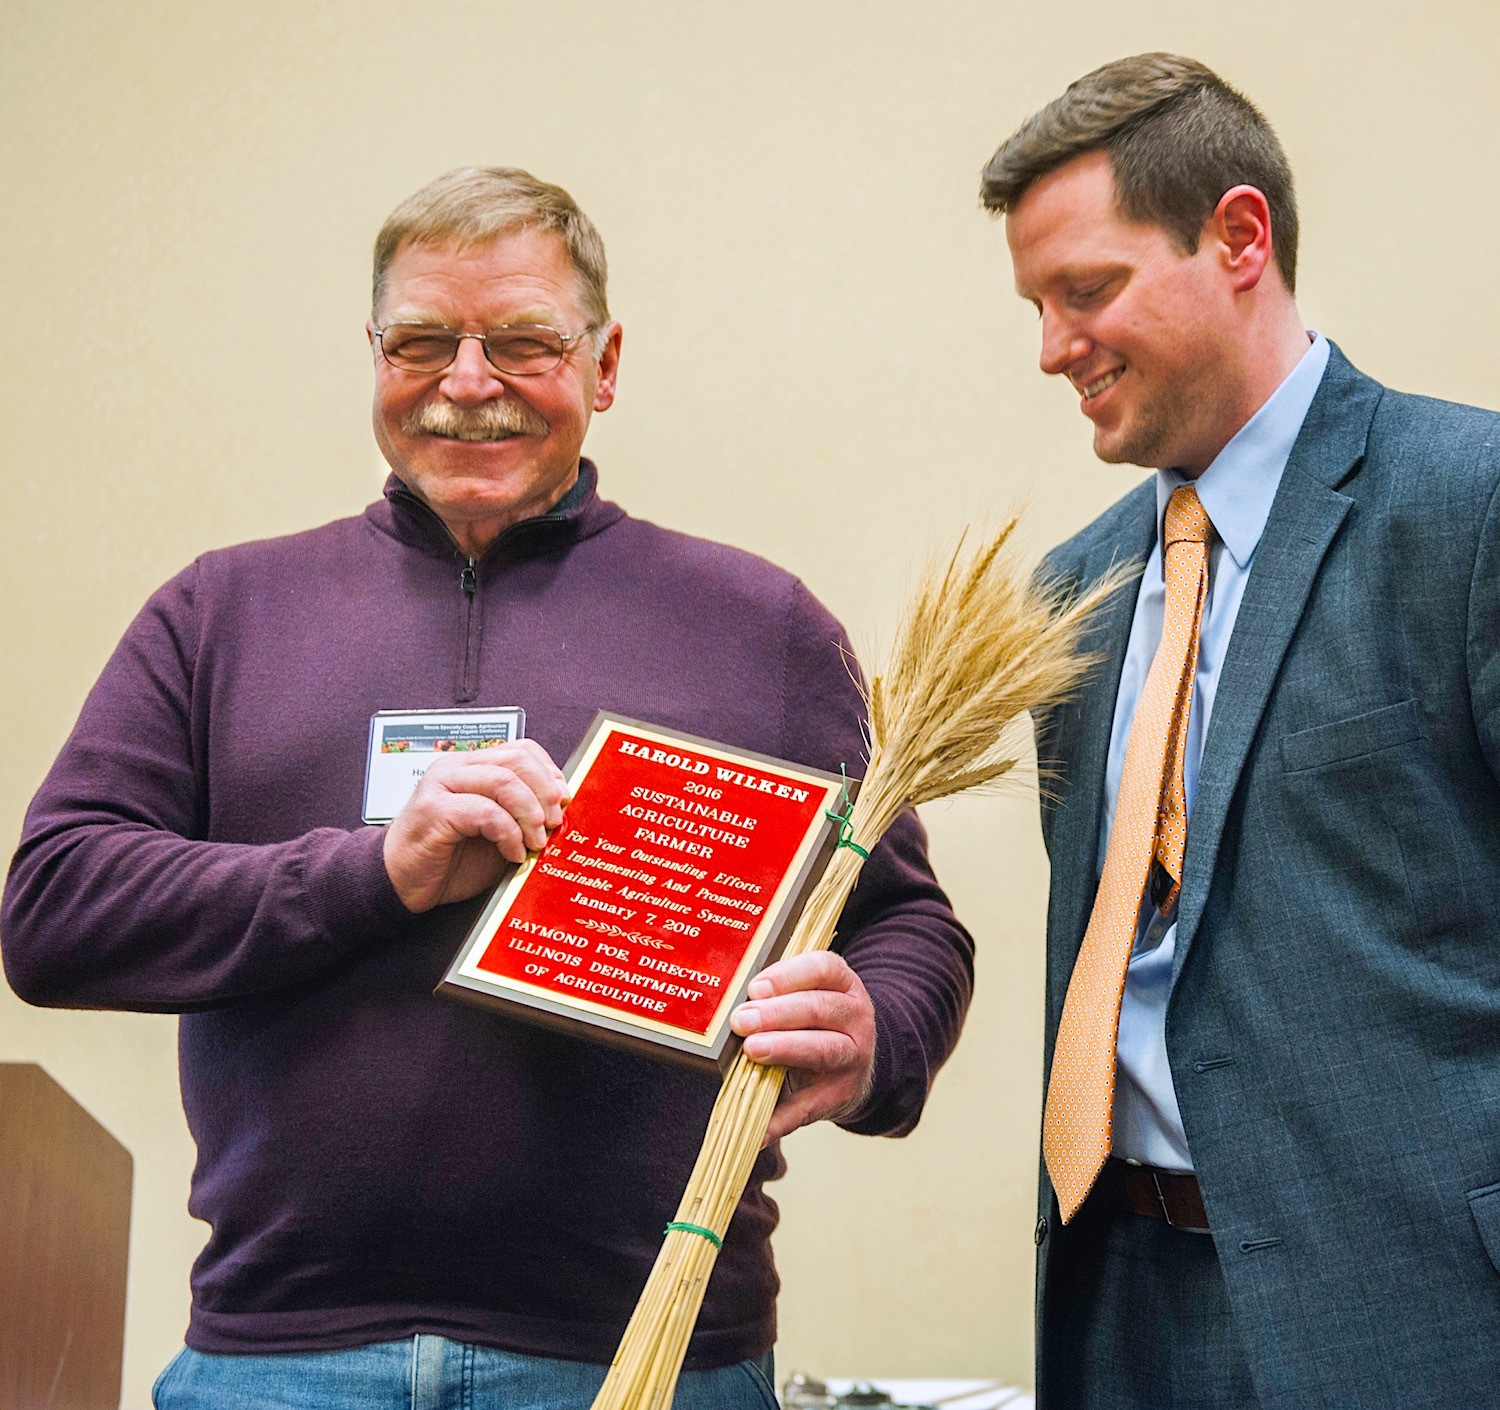 Harold Wilken was honored with the R. J. Vollmer Award by the Illinois Department of Agriculture.